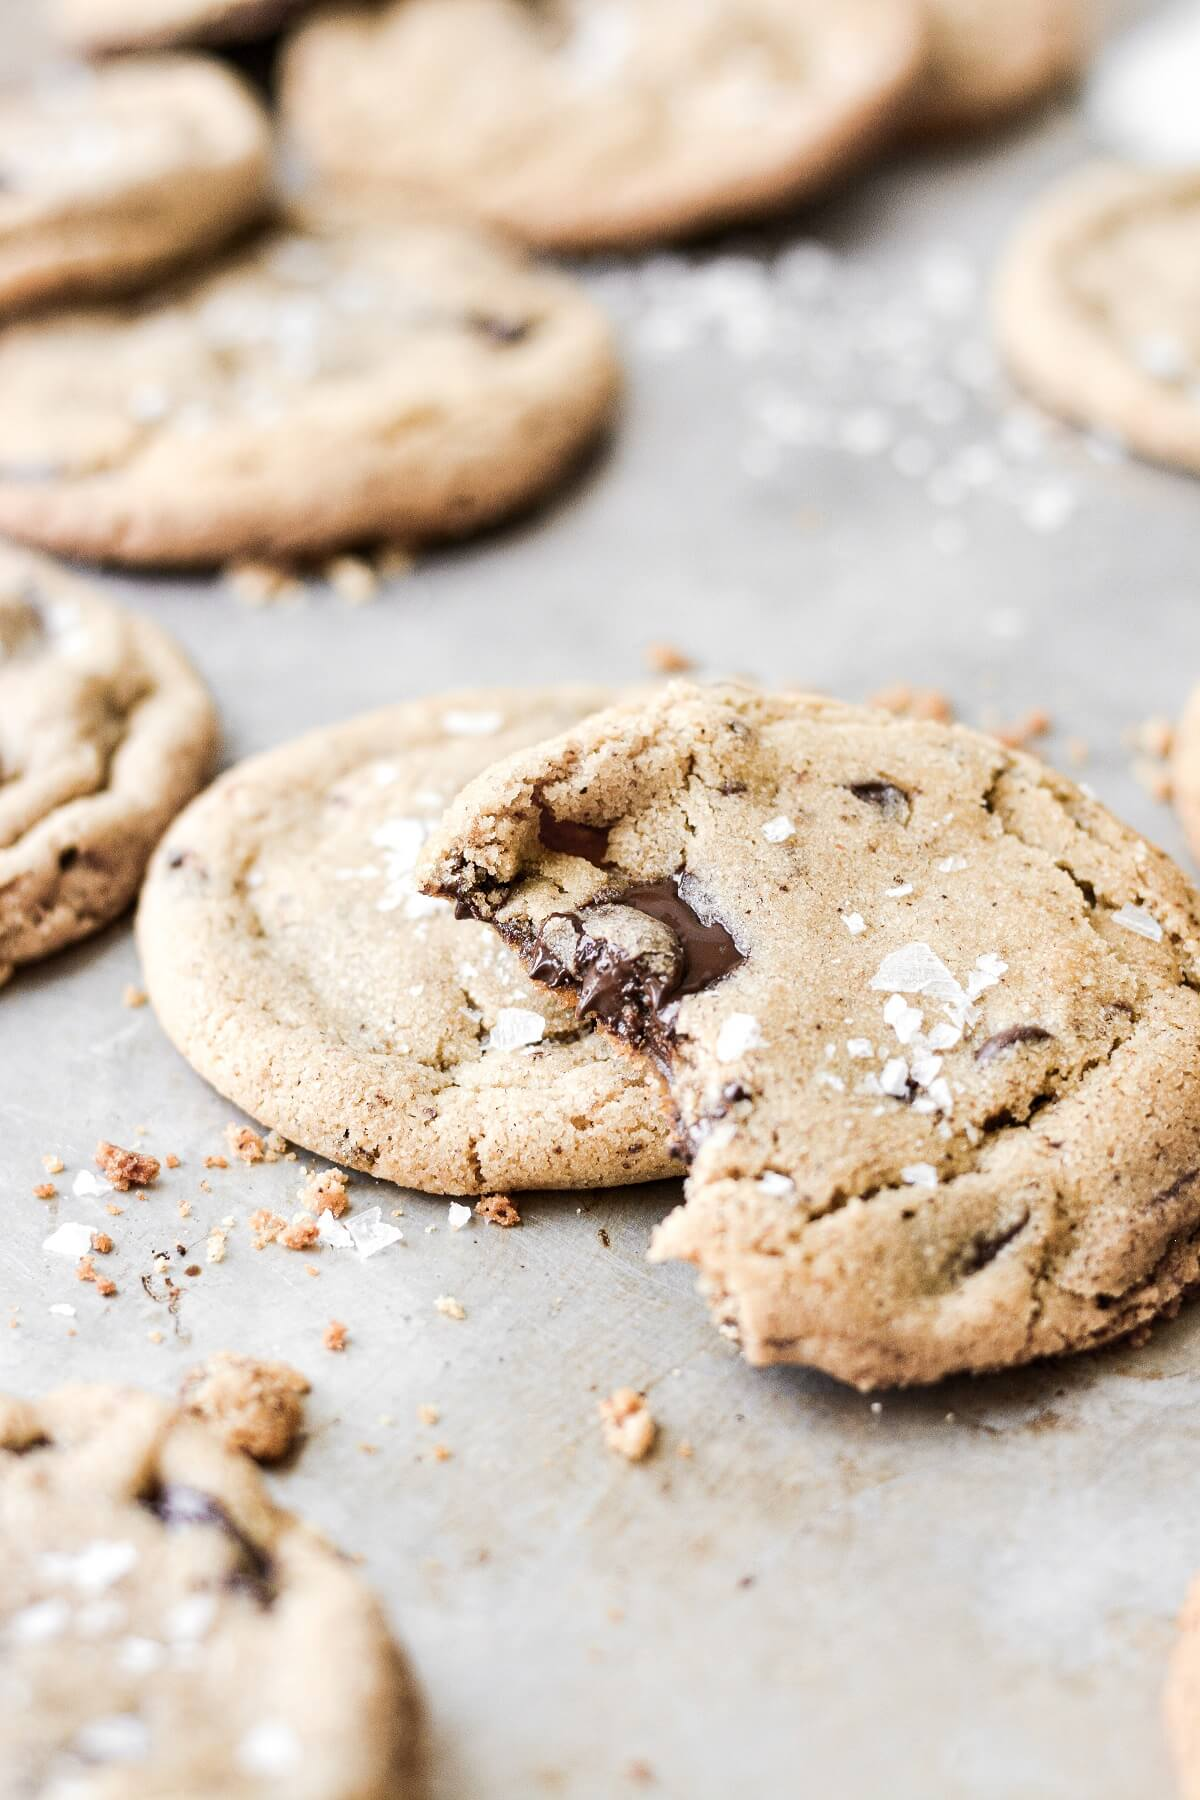 A chocolate chip cookie with a bite taken.